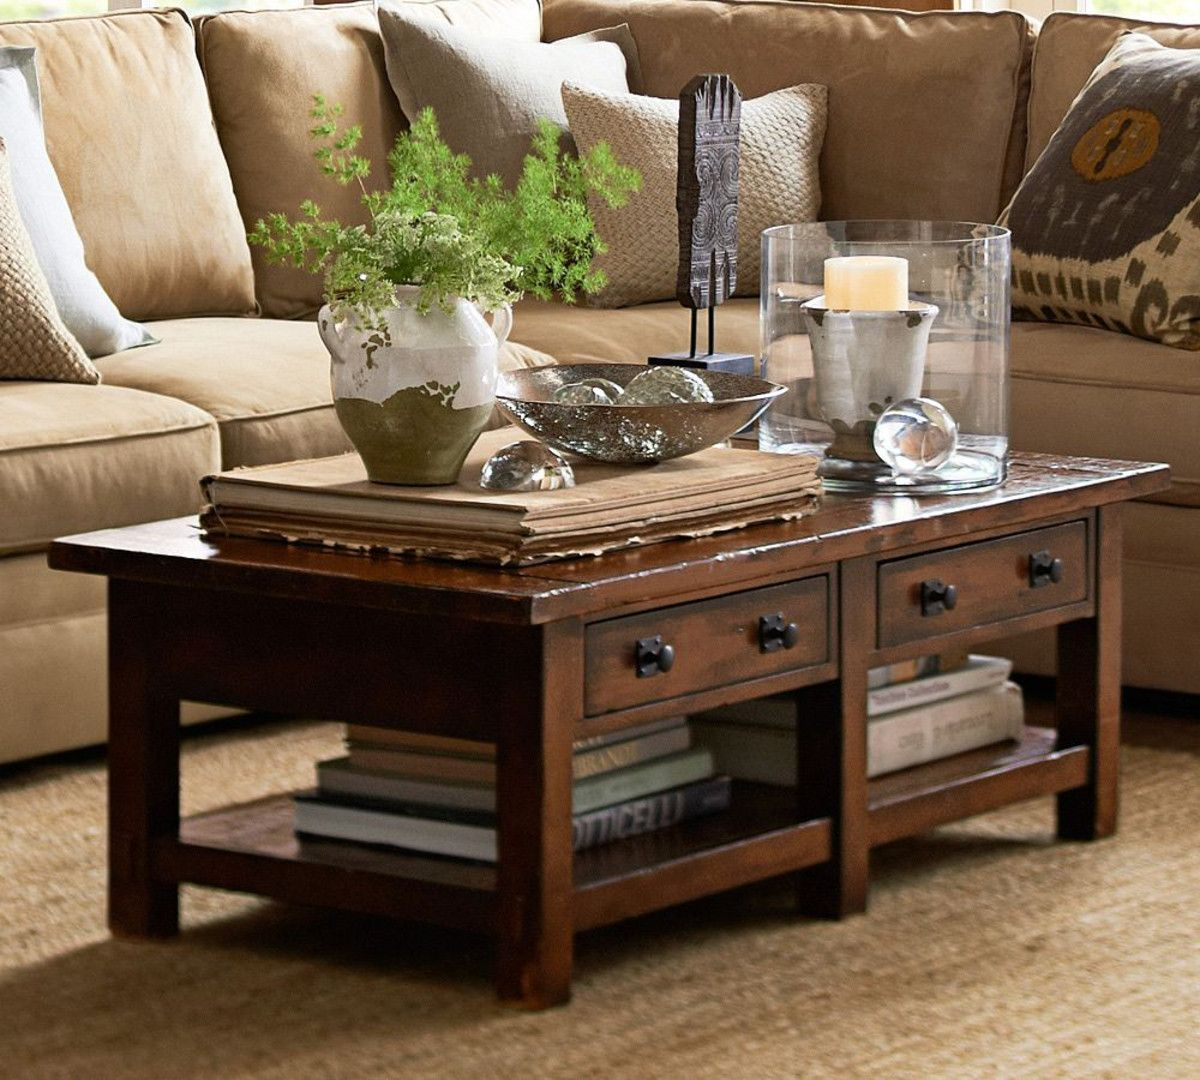 Benchwright Coffee Table - Rustic Mahogany Stain